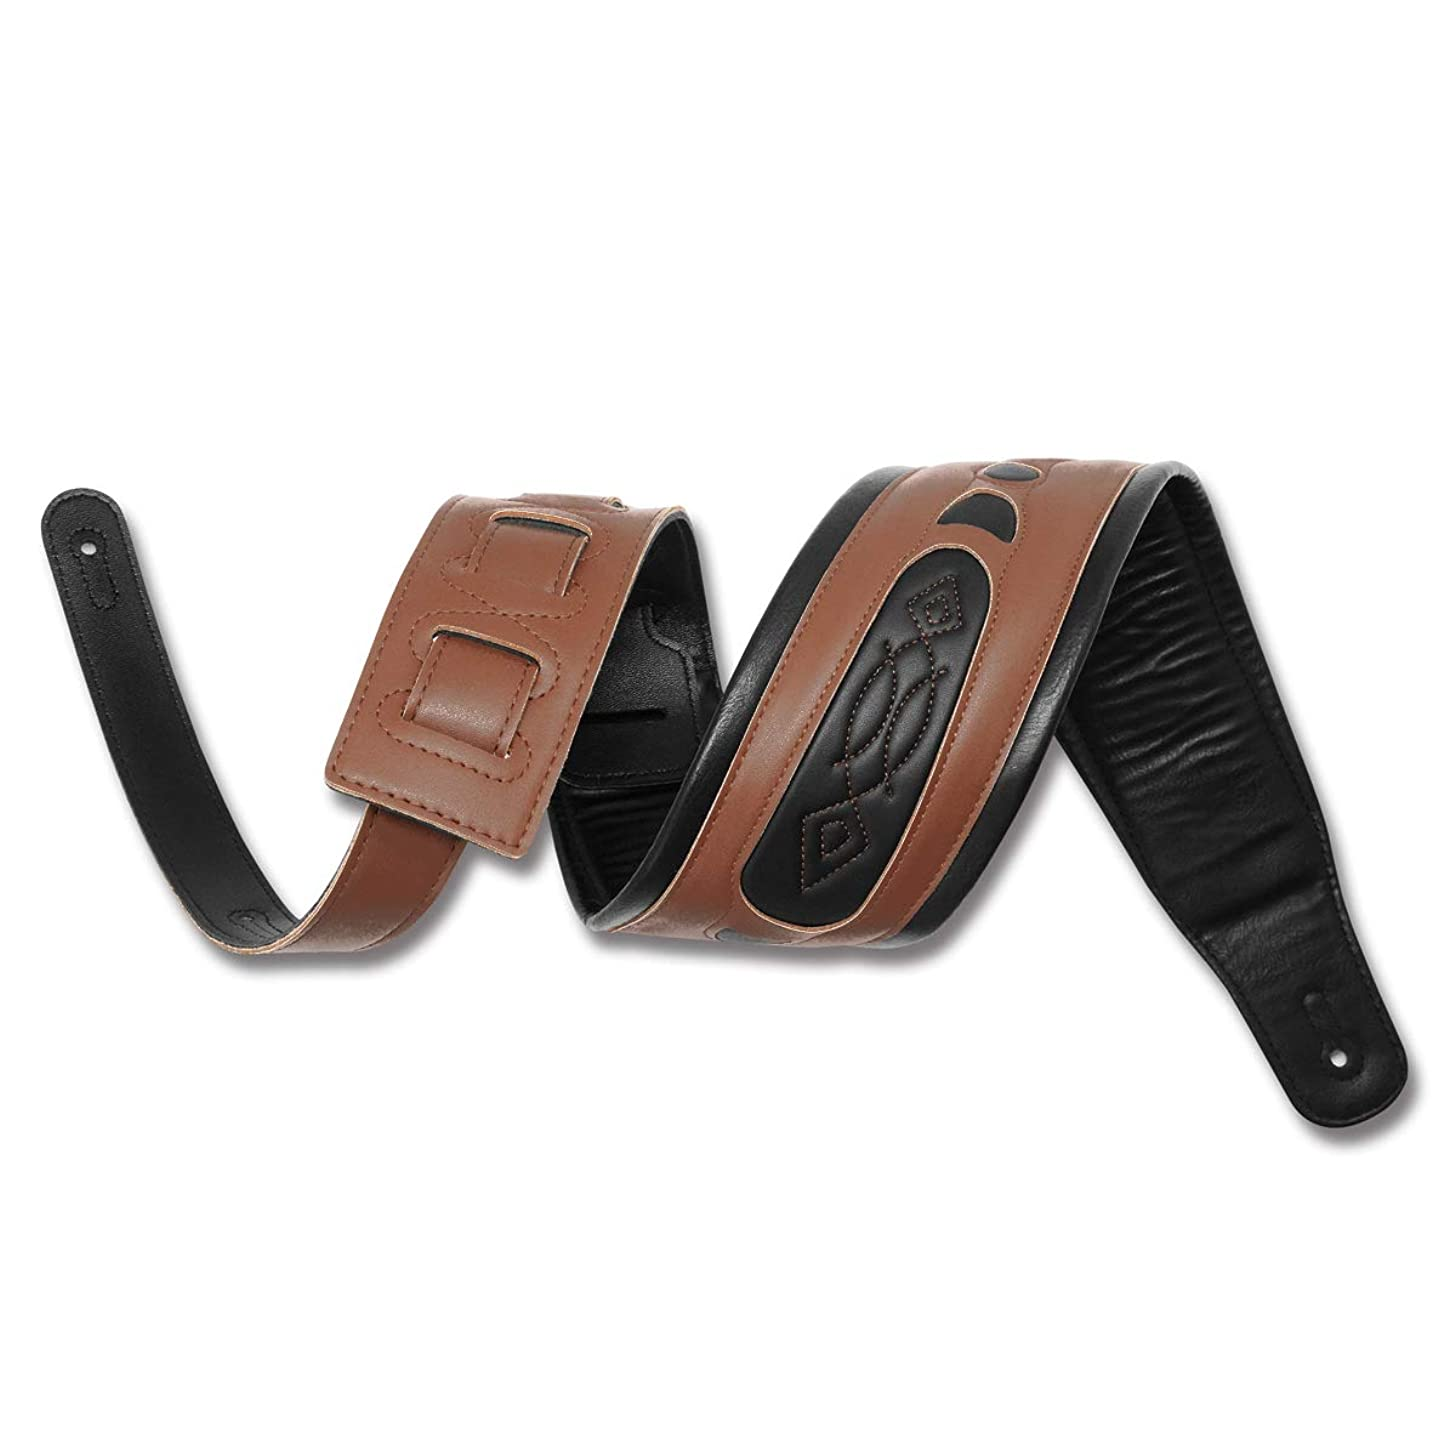 Guitar Strap Adjustable Guitar Straps Genuine Leather Shoulder Pad Guitar Strap for Electric Guitar, Acoustic Guitar and Bass (Brown)